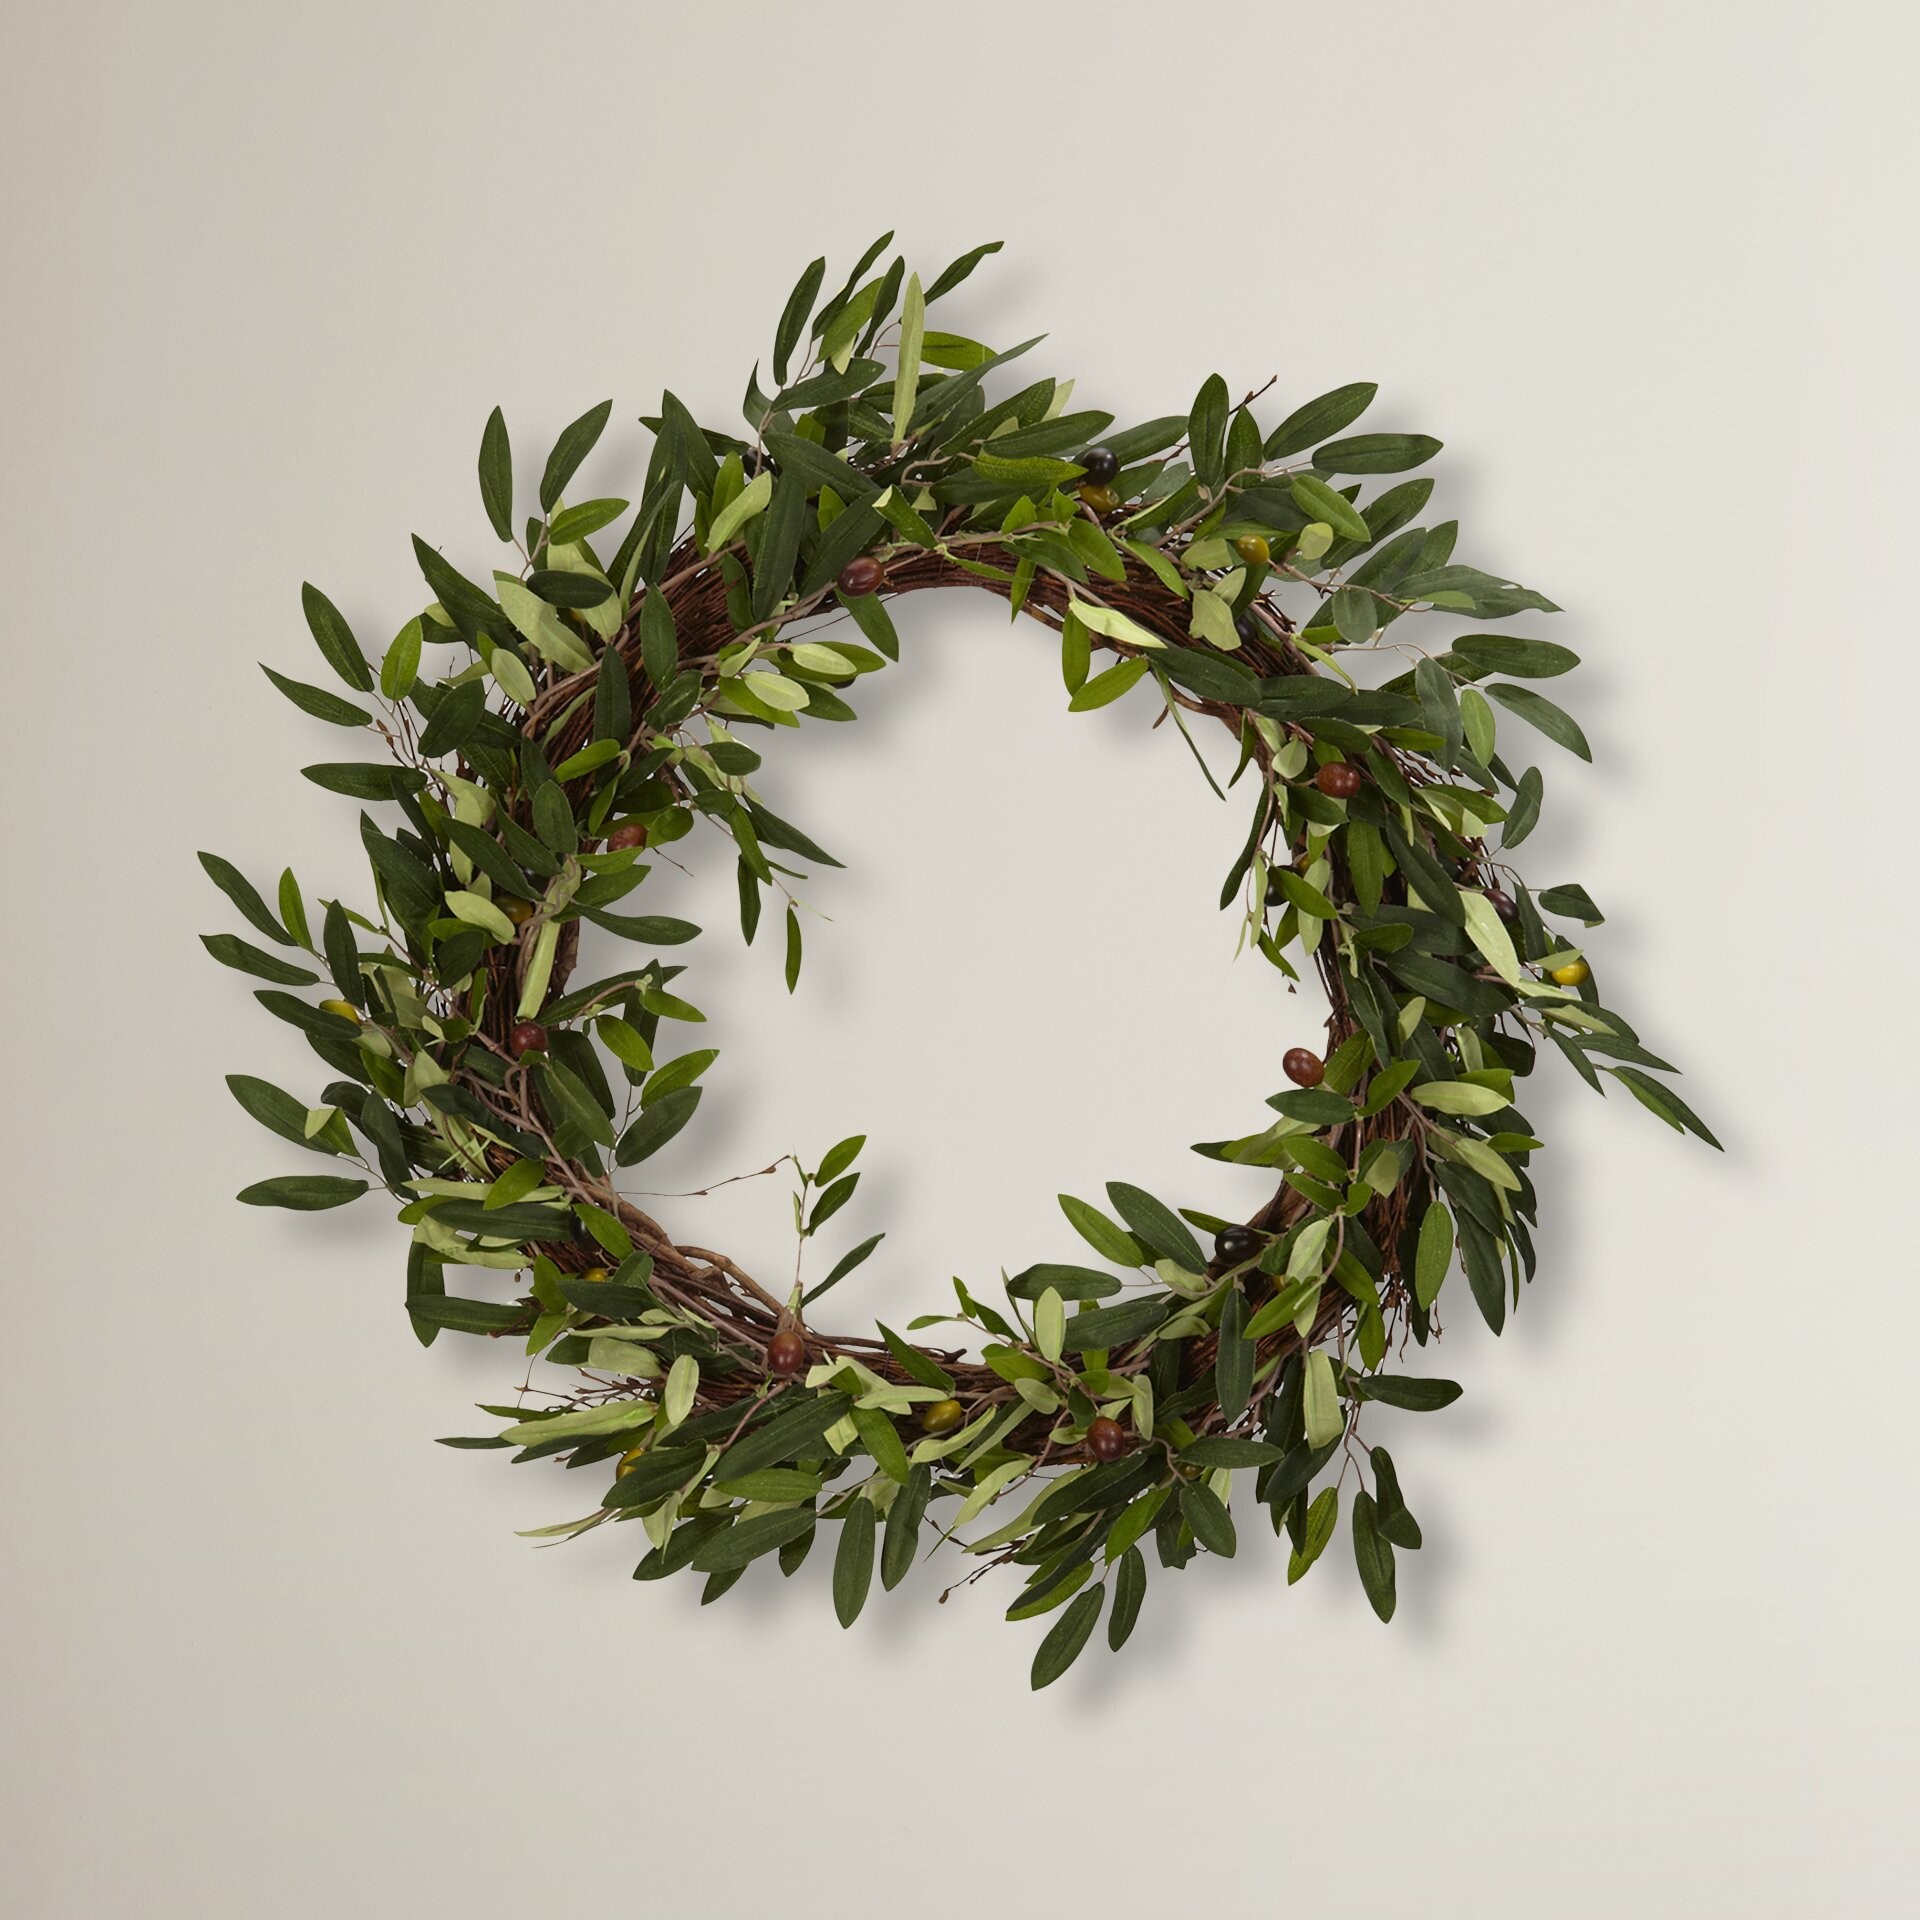 Charlton Home Giada 20quot Faux Olive Wreath amp Reviews Wayfair : Giada Faux Olive Wreath CHLH1856 from www.wayfair.com size 1920 x 1920 jpeg 558kB